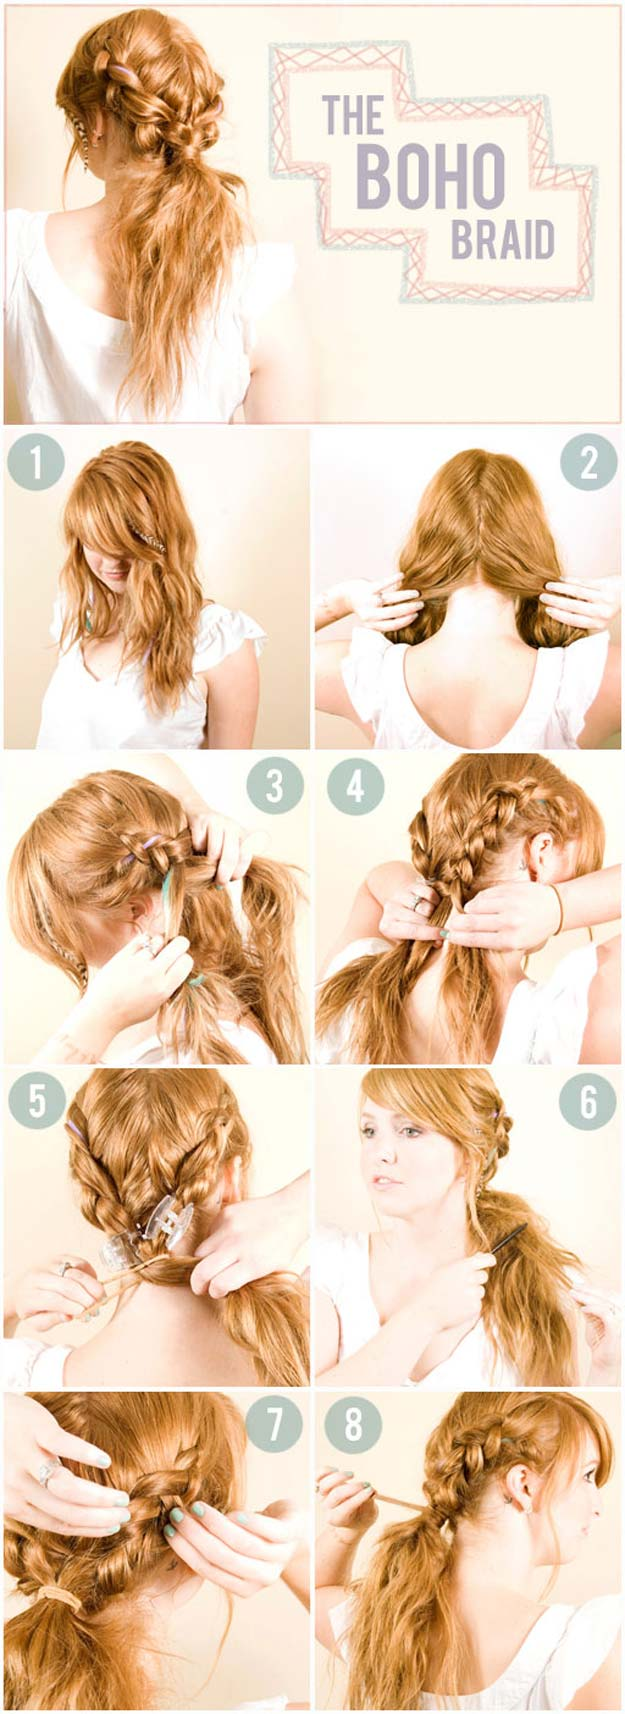 35 beautiful braid tutorials that you'll love! - ecstasycoffee